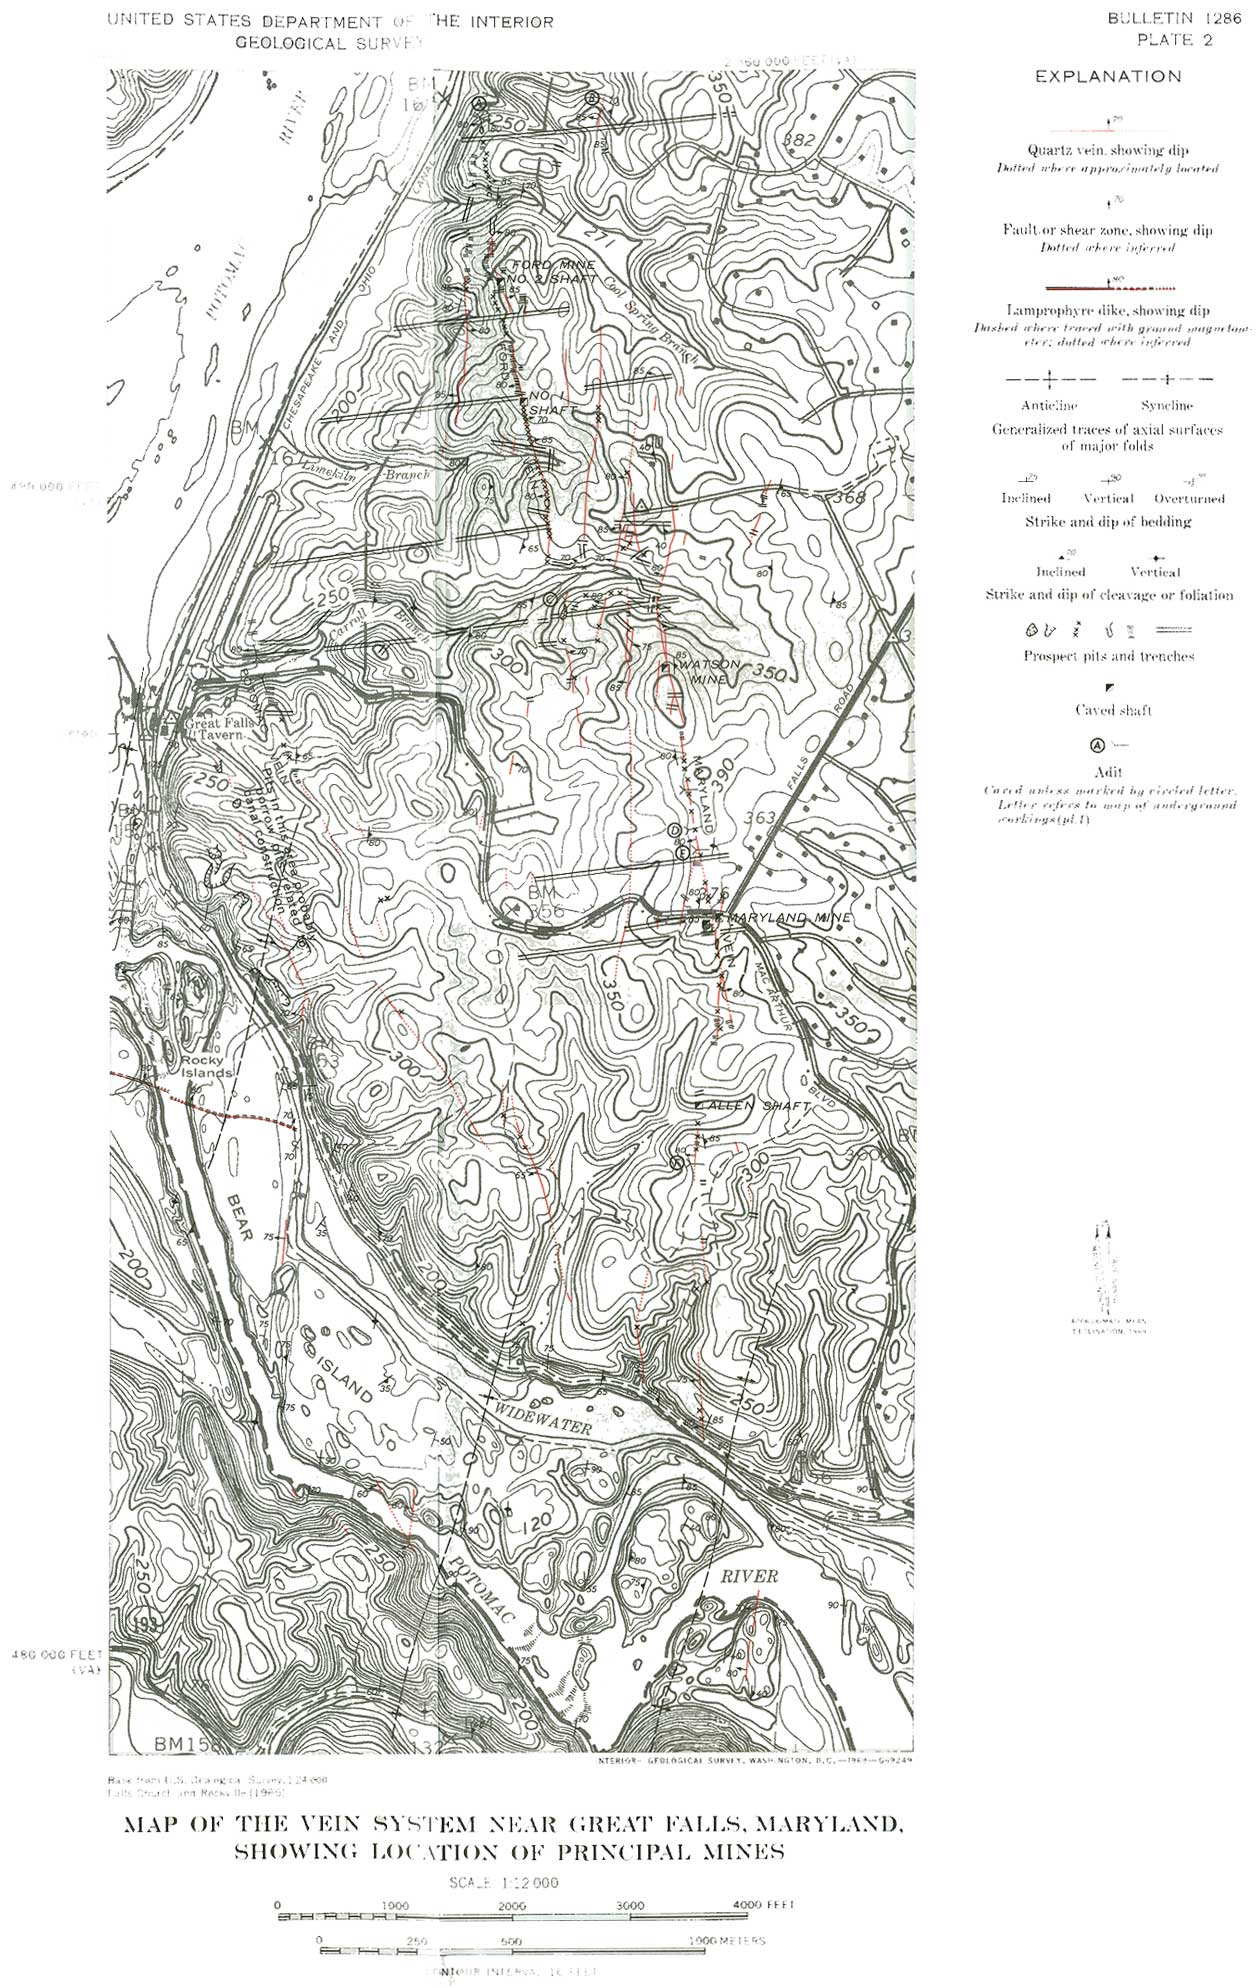 Usgs Geological Survey Bulletin 1286 Introduction